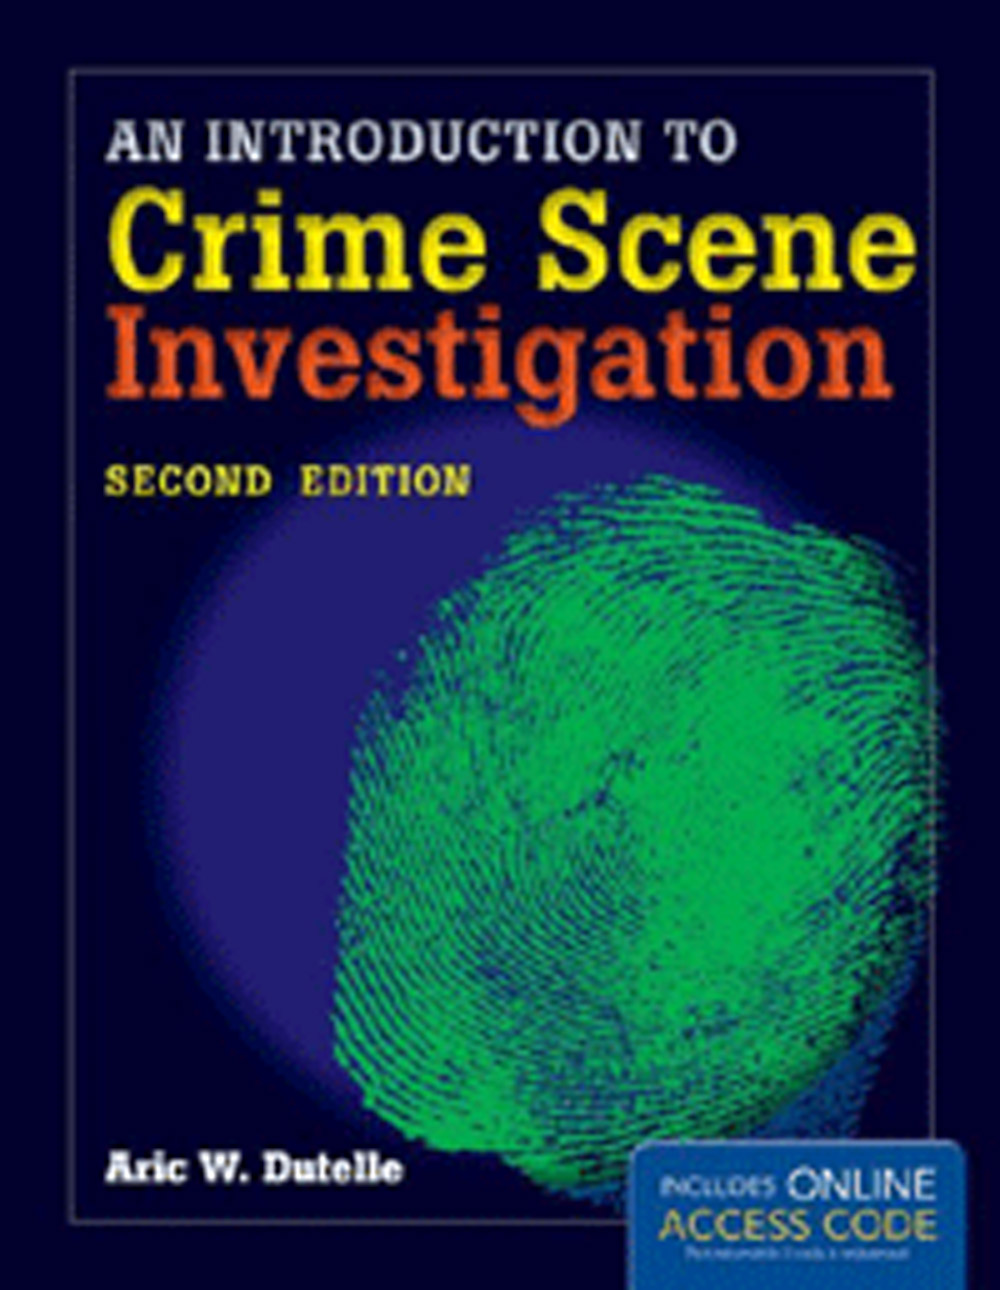 Introduction to crime scene investigation second edition pi introduction to crime scene investigation second edition pi magazine trade publication for private investigatorspi magazine fandeluxe Choice Image